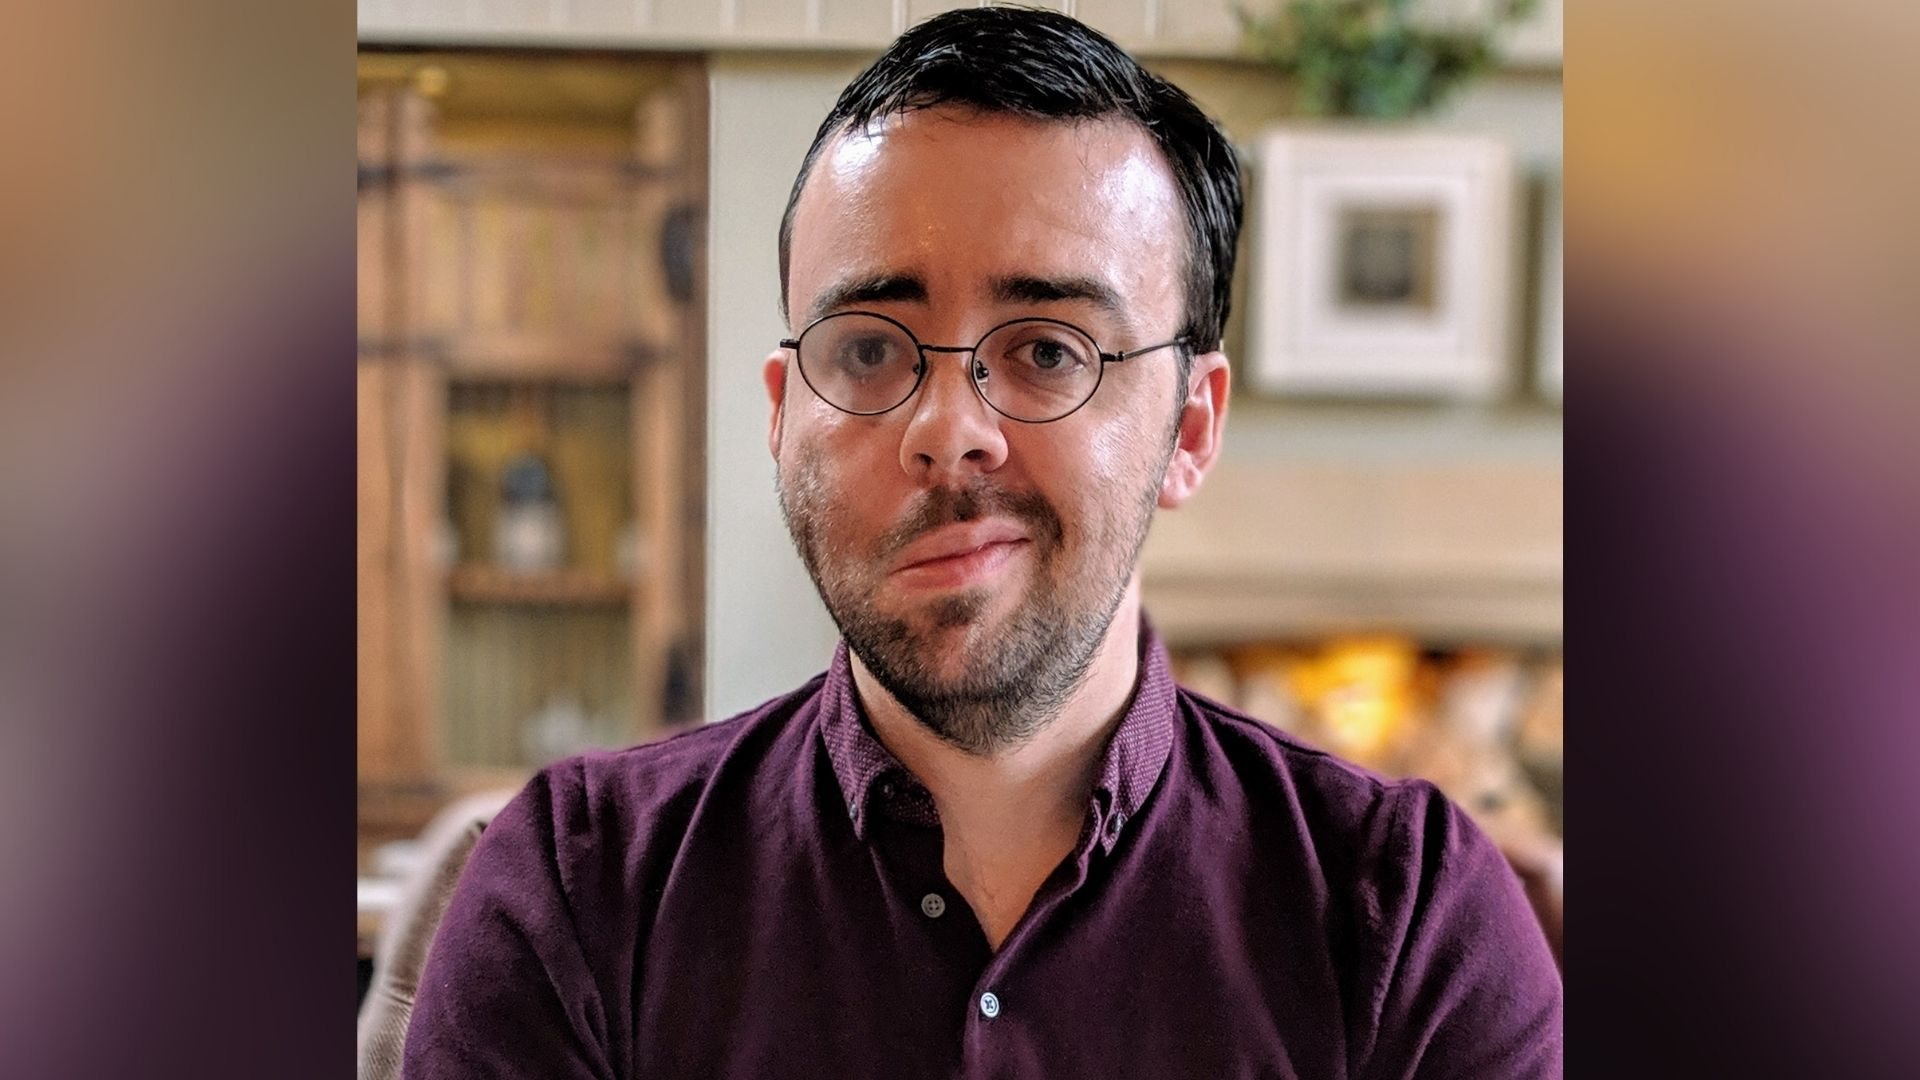 Kevin, a man, 30s, with short dark brown hair, stubble and glasses. The right side of his face droops due to loss of muscle control. He's wearing a purple shirt.